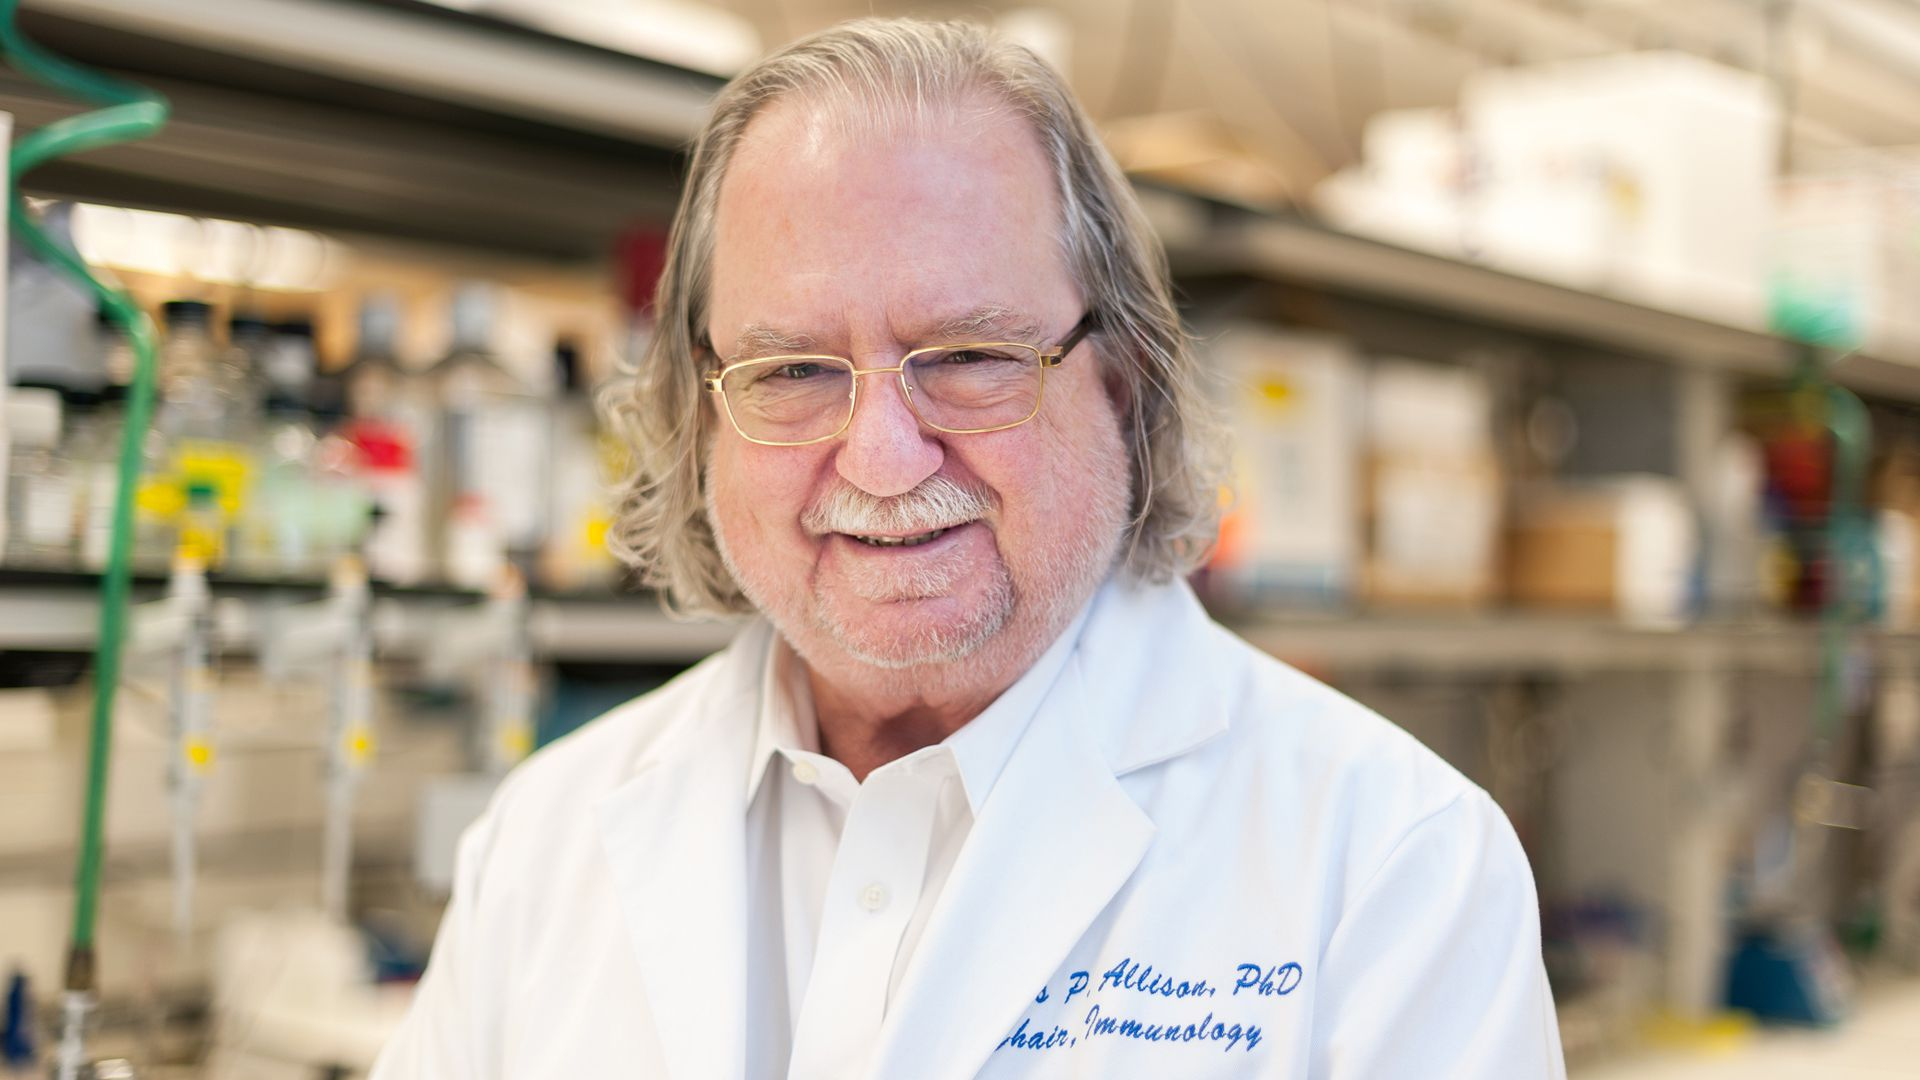 Photo of Jim Allison, who won the 2018 Nobel Prize, in his lab coat.